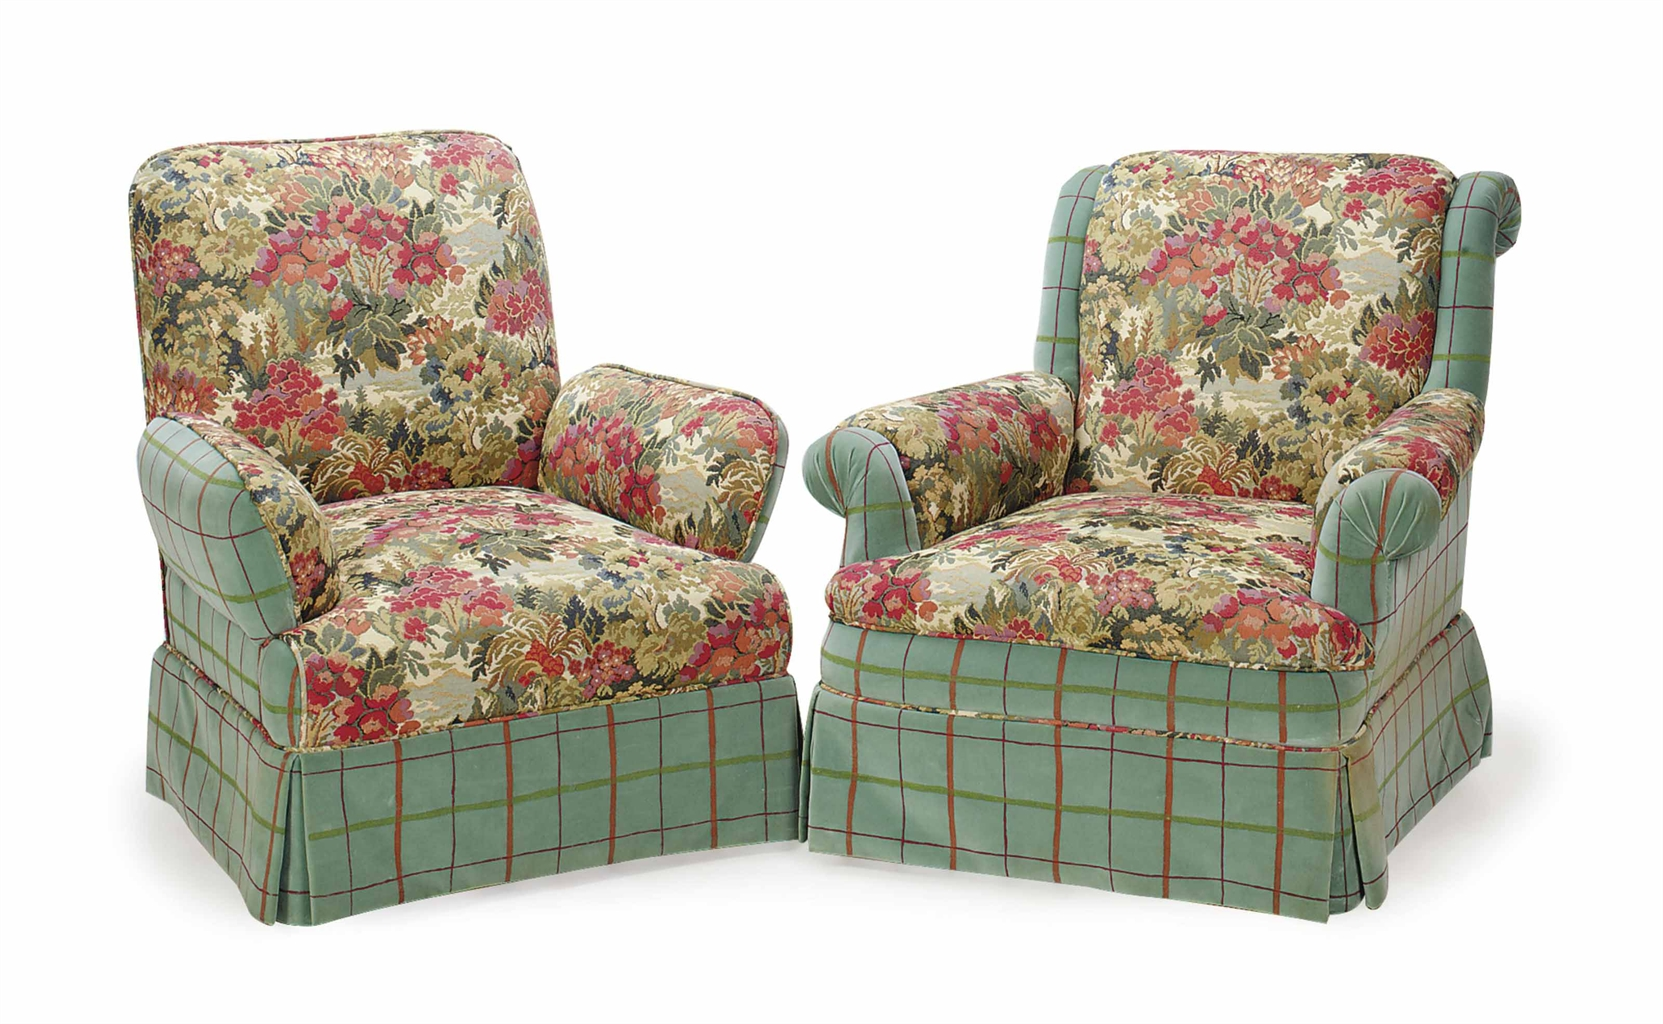 floral upholstered chair with canopy walmart a pair of plaid and plush club chairs